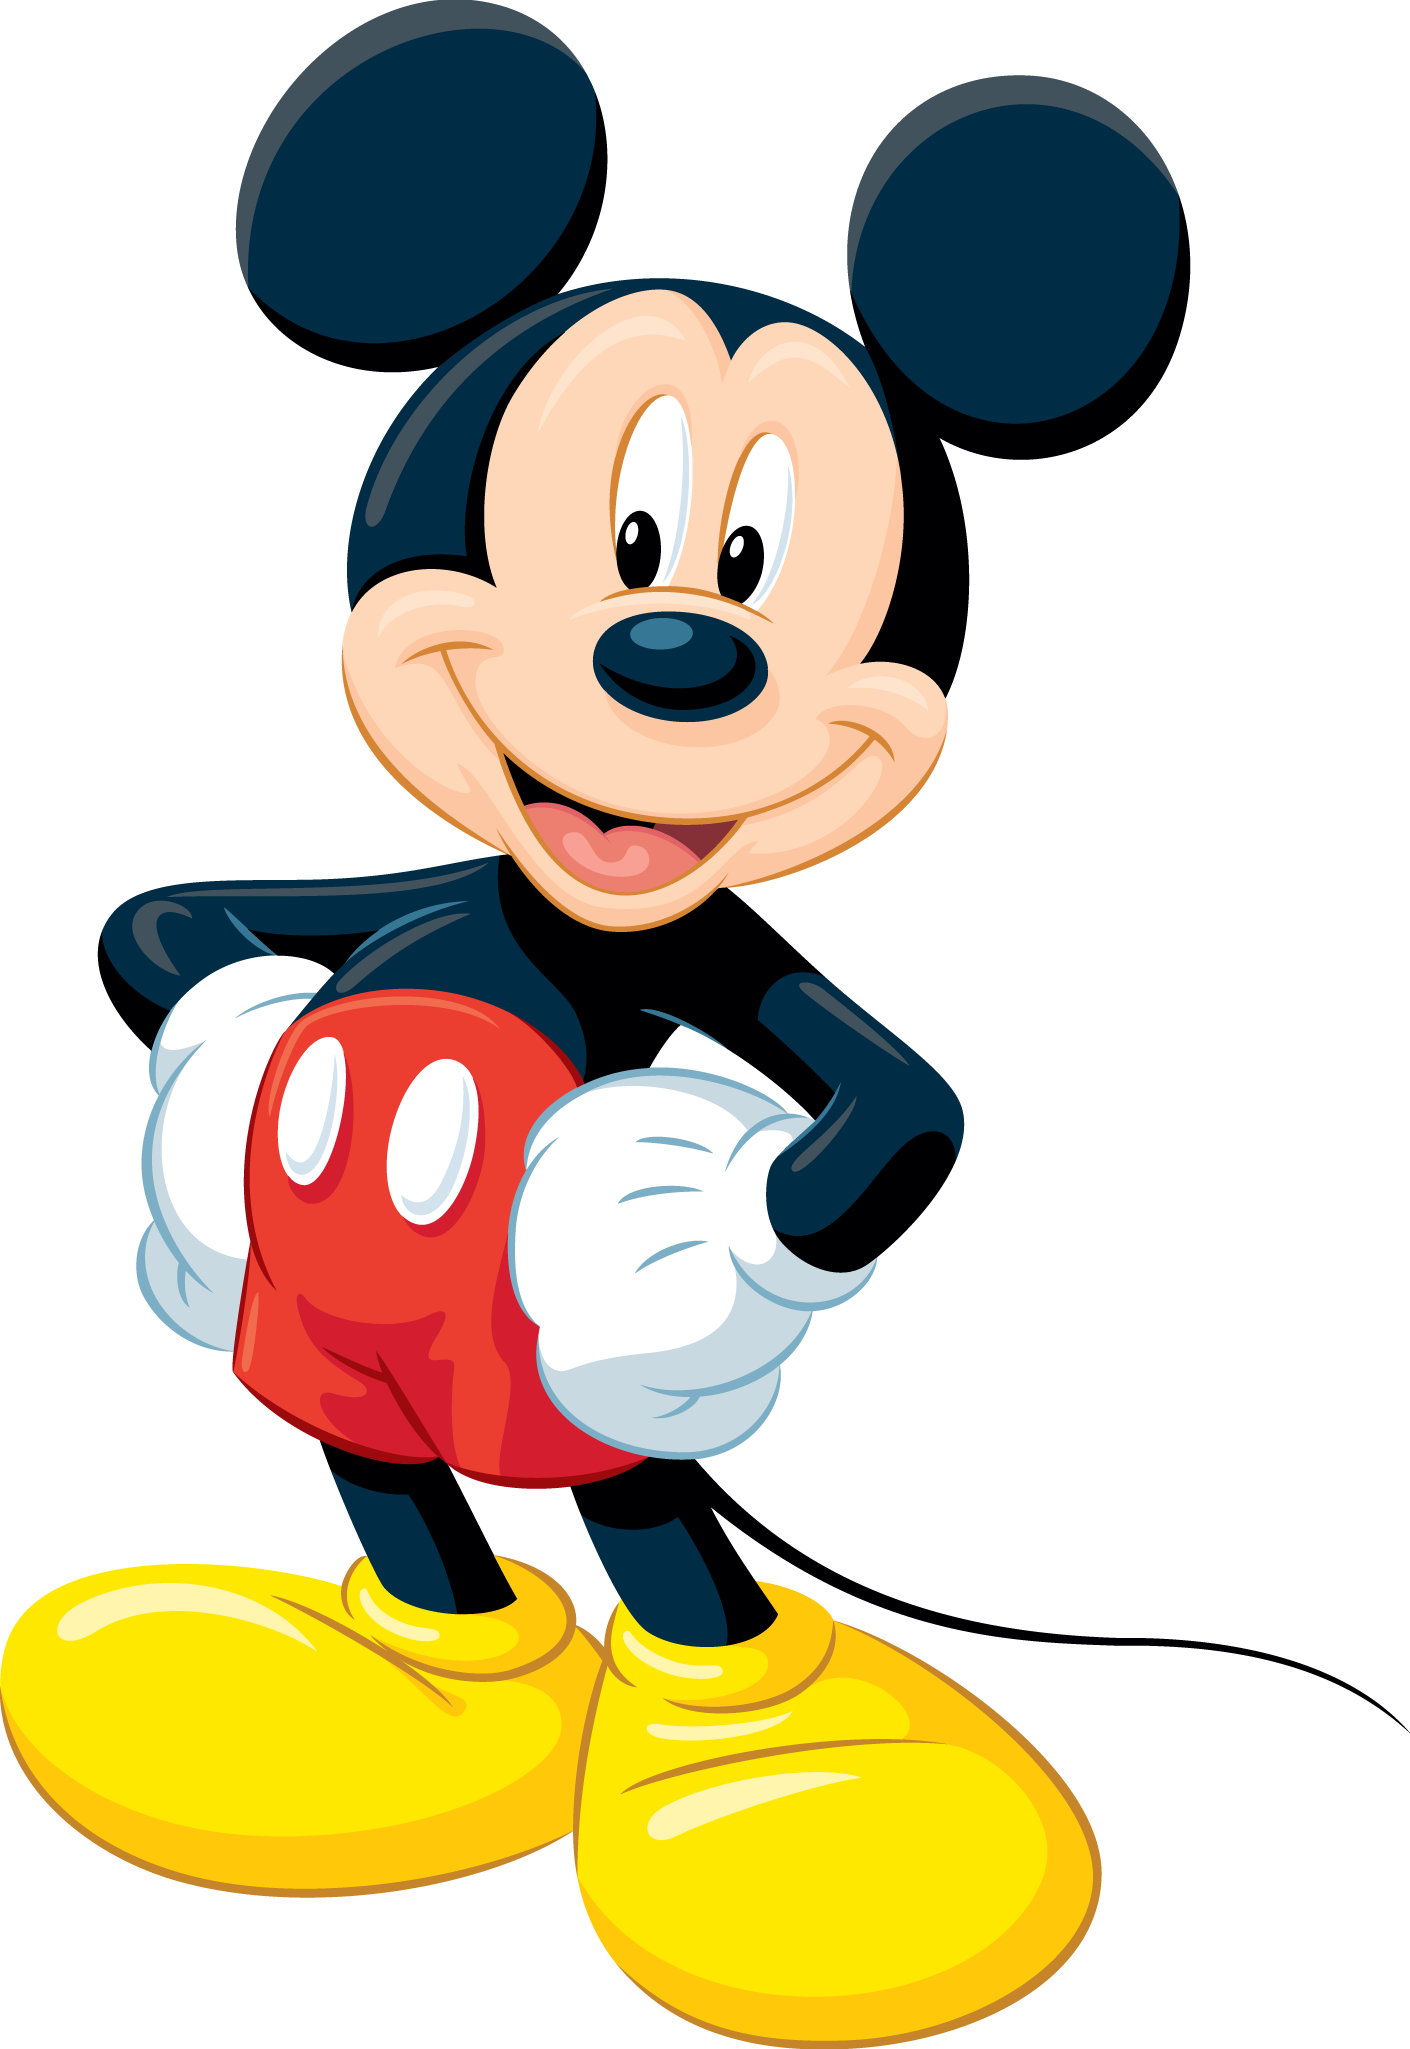 Mickey mouse head png. Hd transparent images pluspng